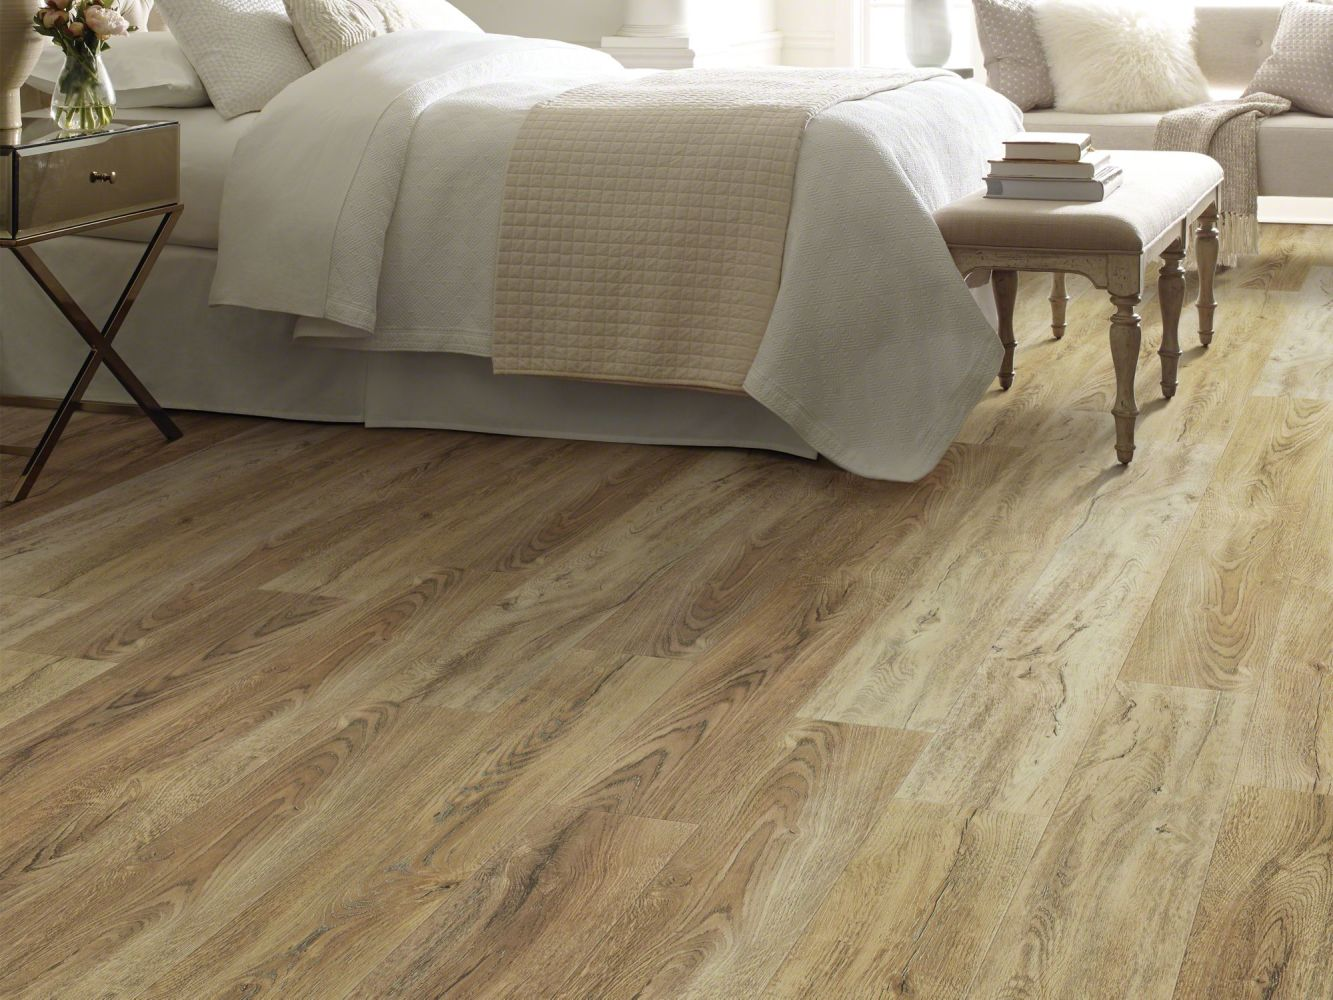 Shaw Floors Resilient Residential Pantheon HD Plus Foresta 00282_2001V